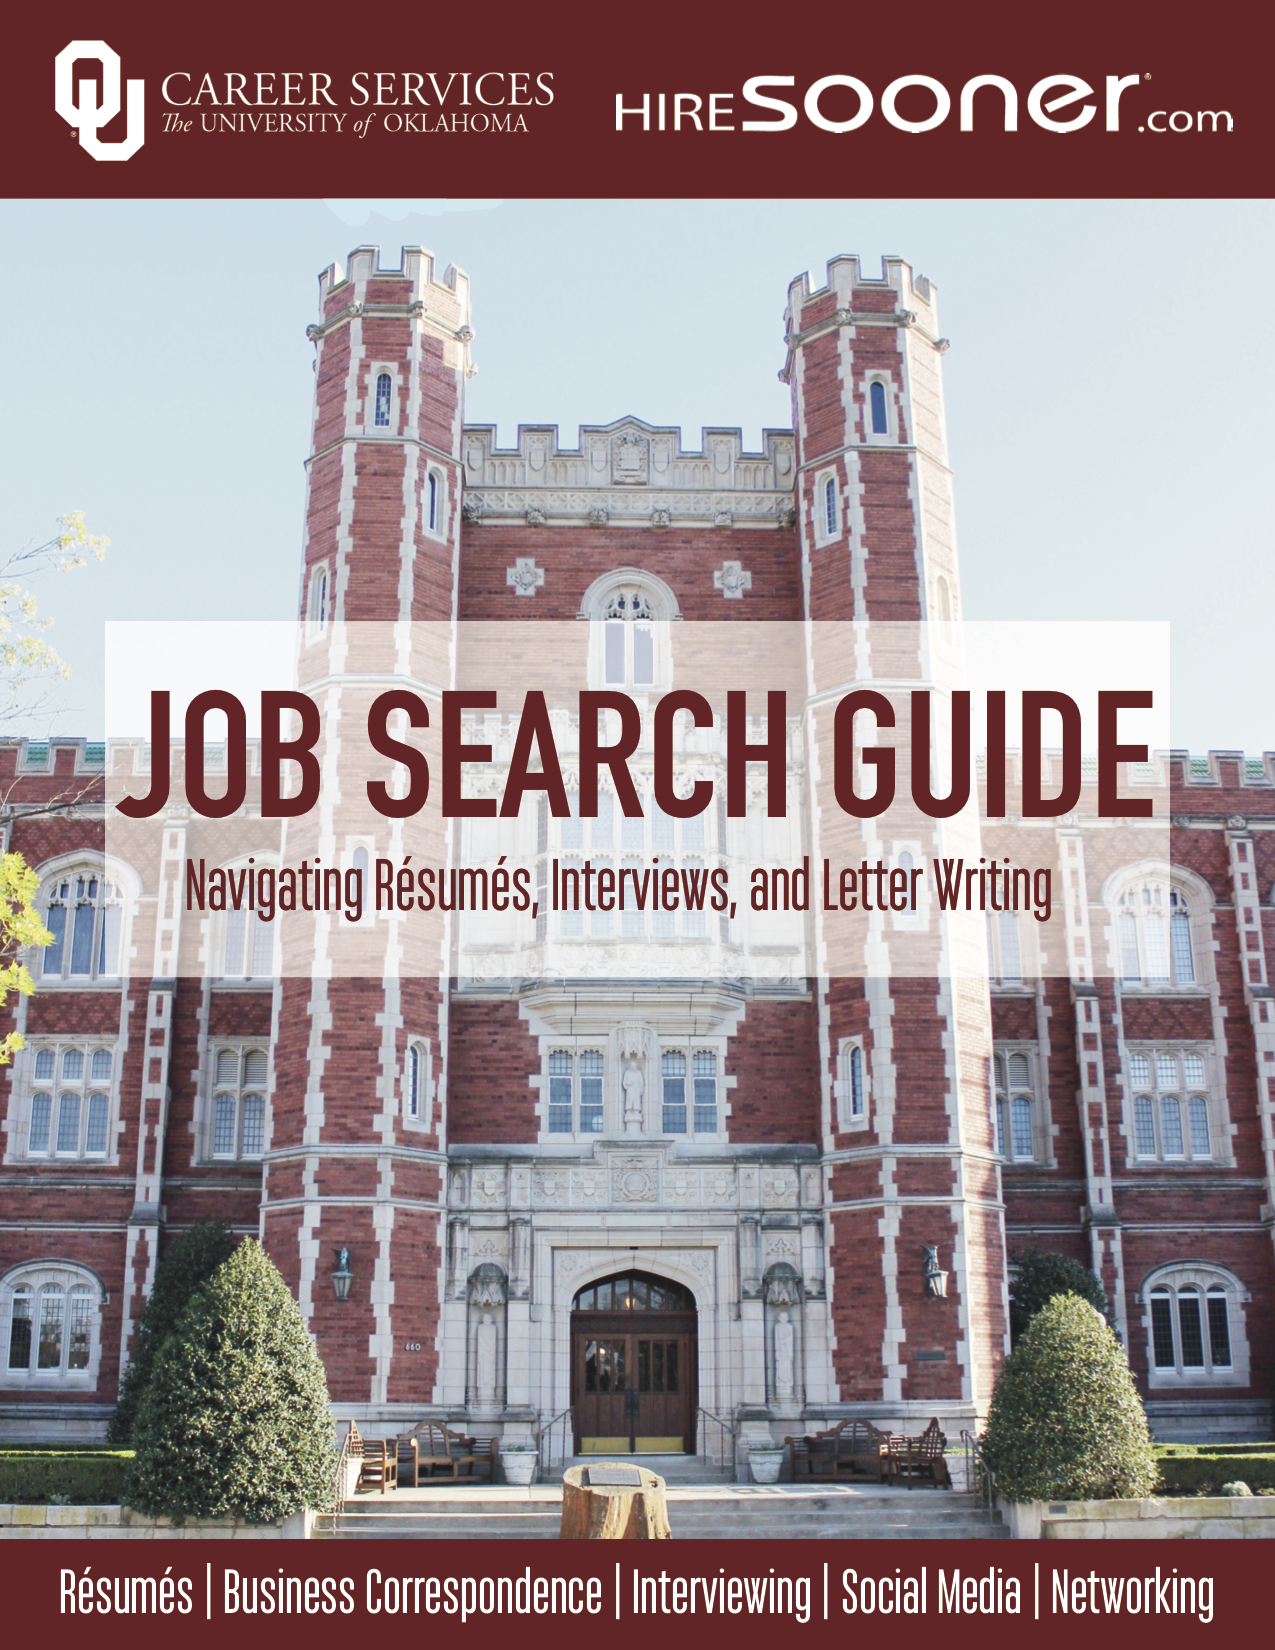 OU Career Services Job Search Guide Cover Image: Navigating Resumes, Interviews, and Letter Writing (jpg)